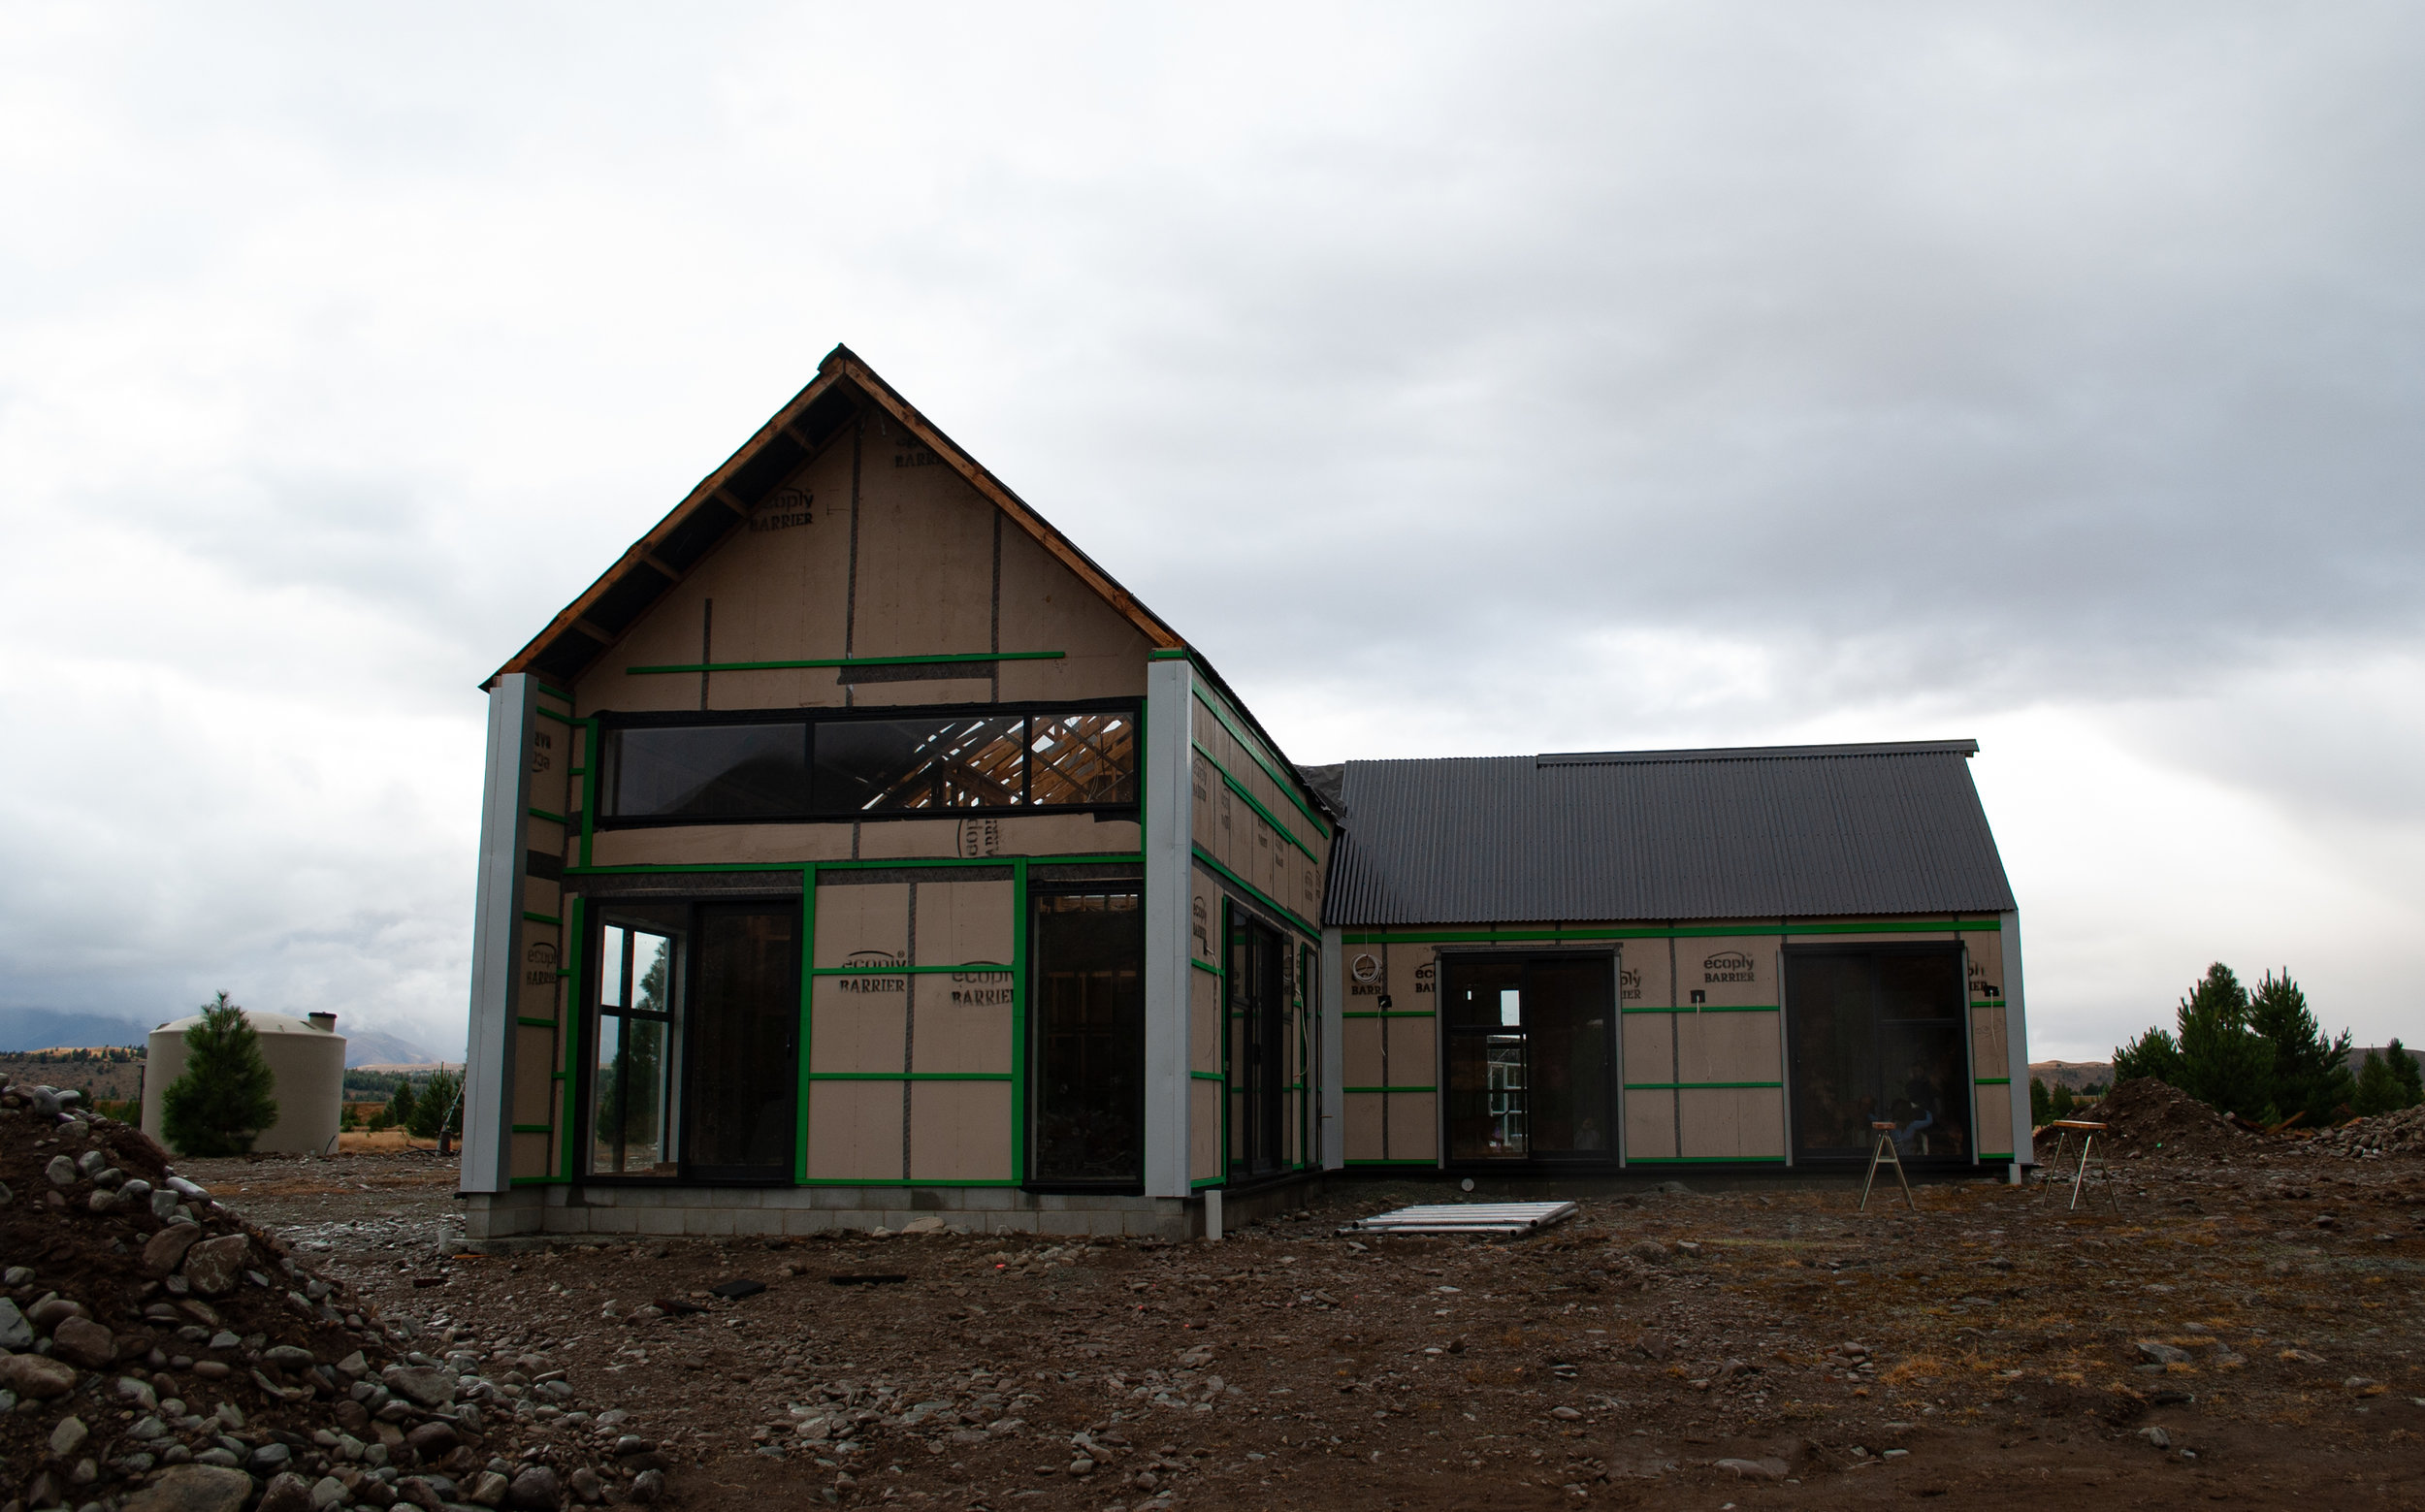 Taken on the 24th of February. The insulation is in and this week the walls go up and gib stopping begins. The whole house has now been wired and plumbed, the septic and water tanks have been installed. The internal doors have arrived and the kitchen is booked for installation!